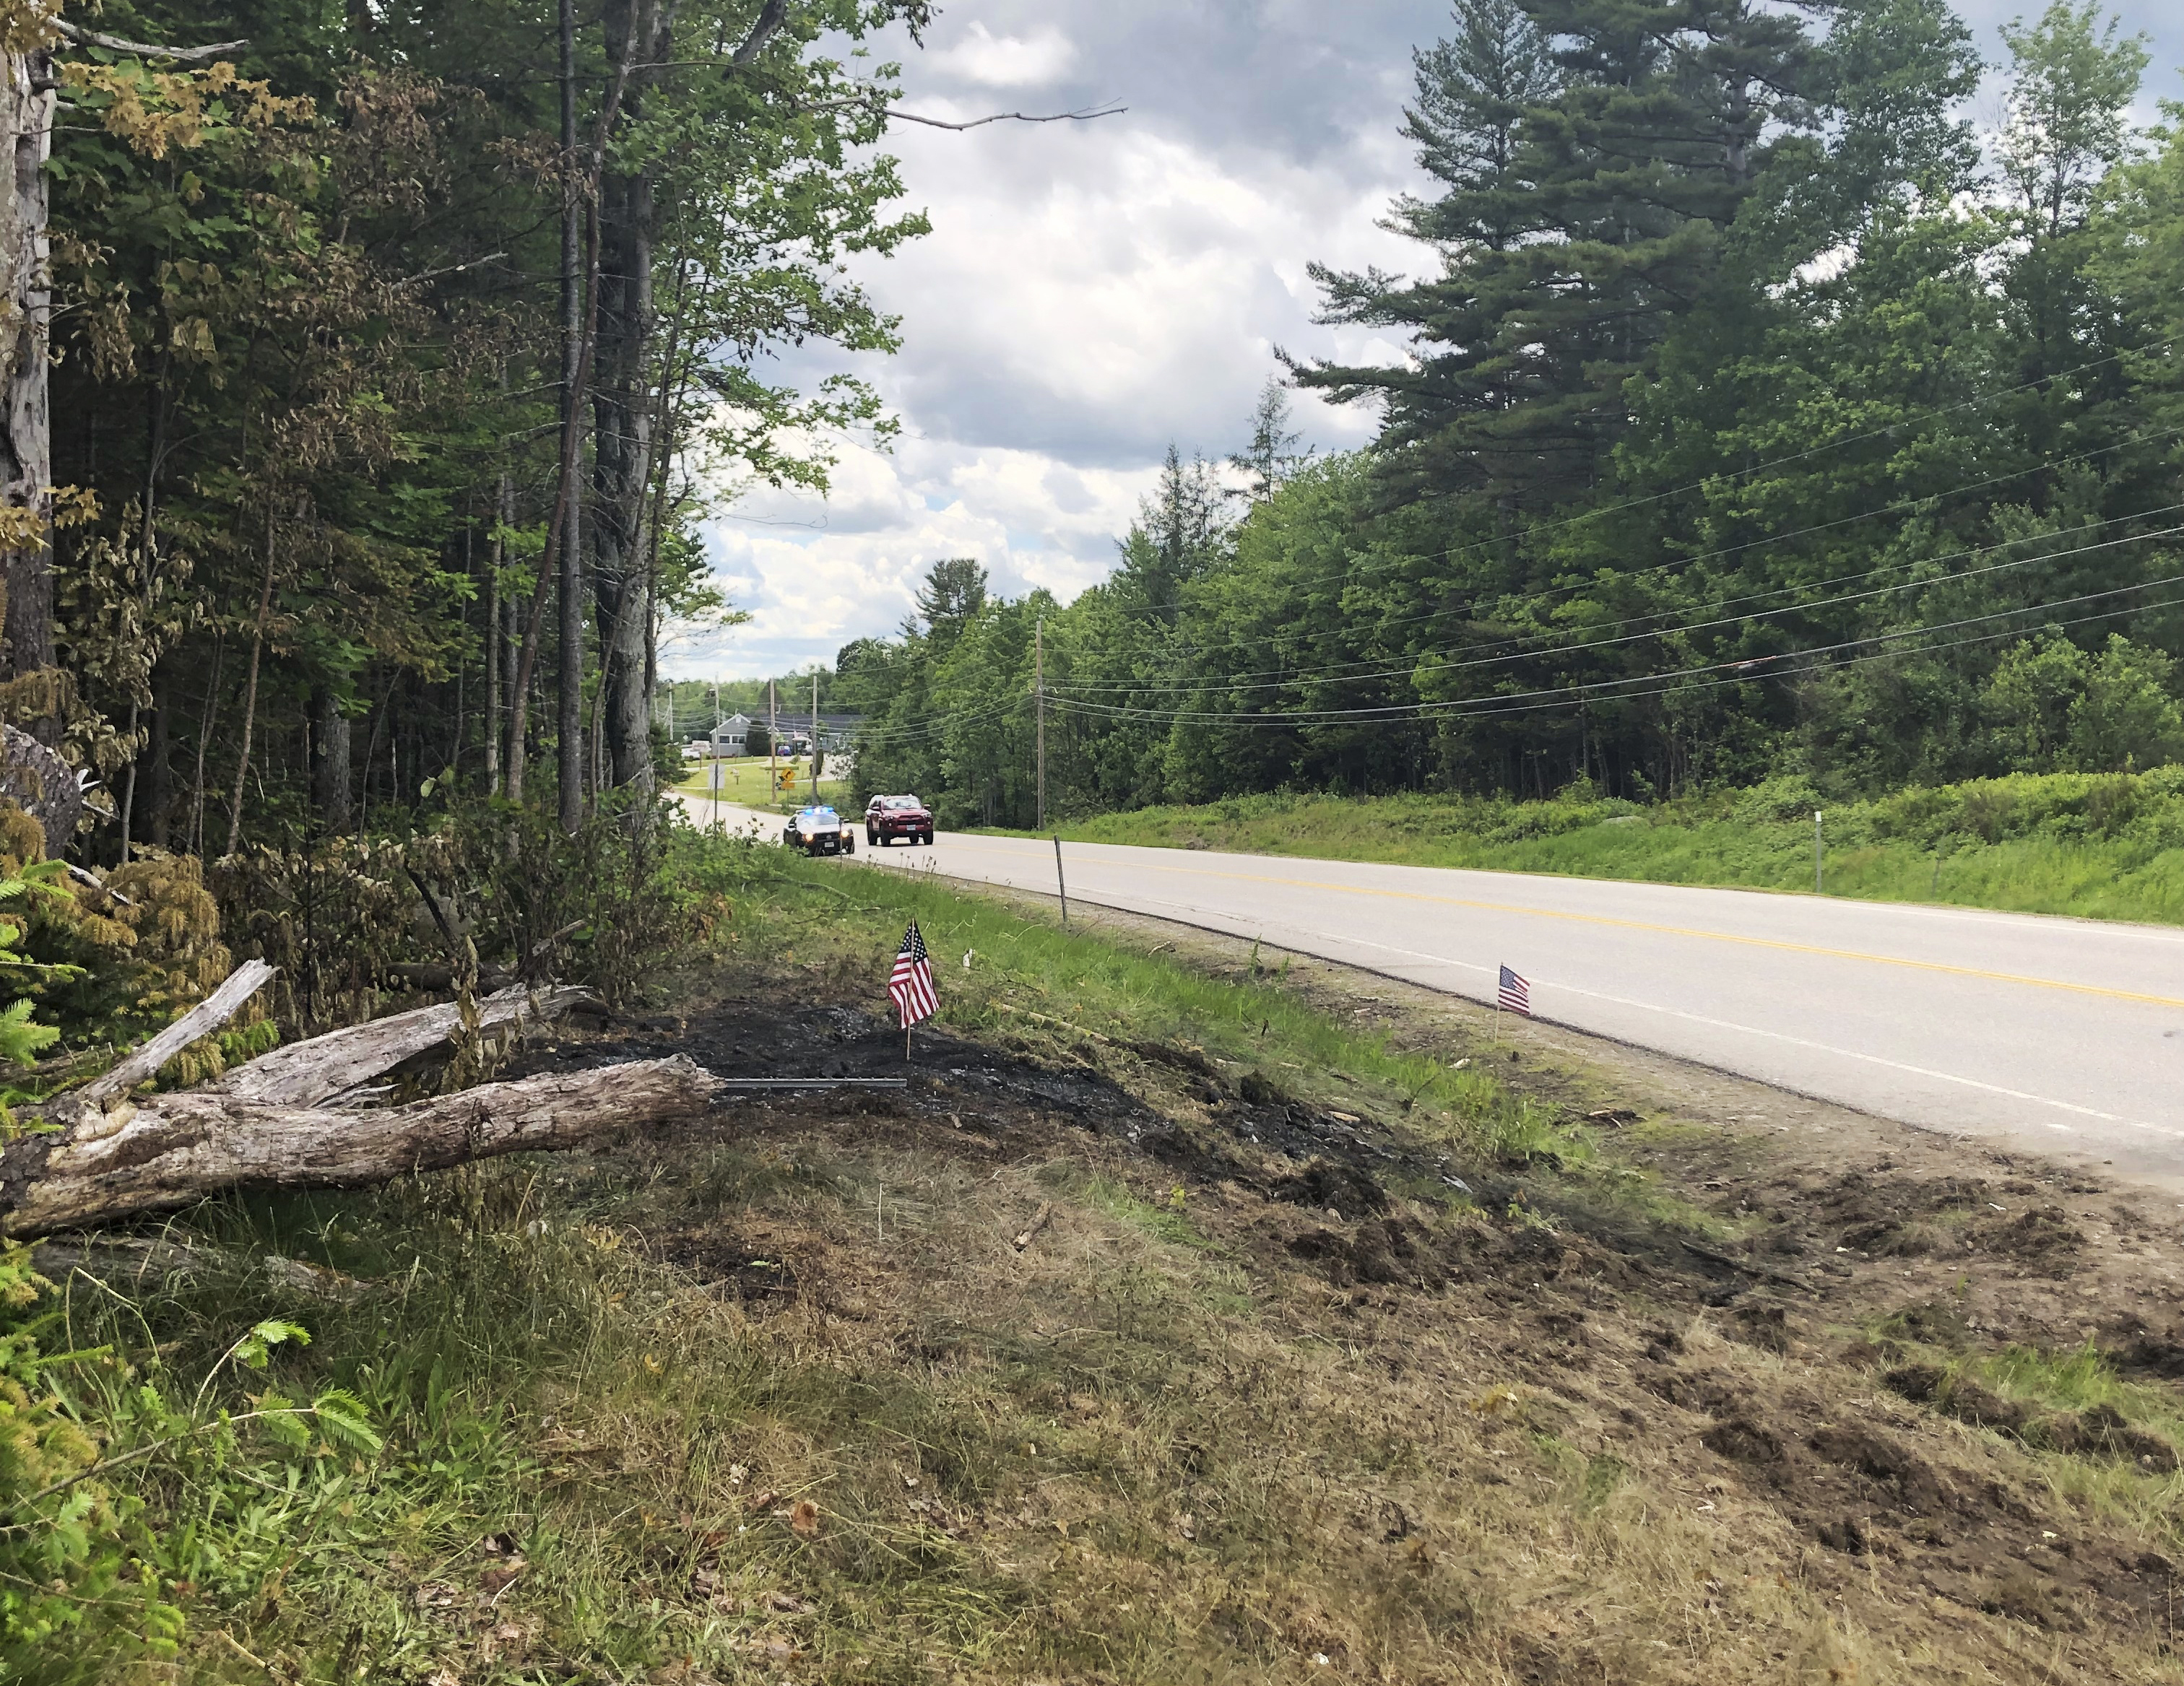 The Latest: Police identify victims of New Hampshire biking